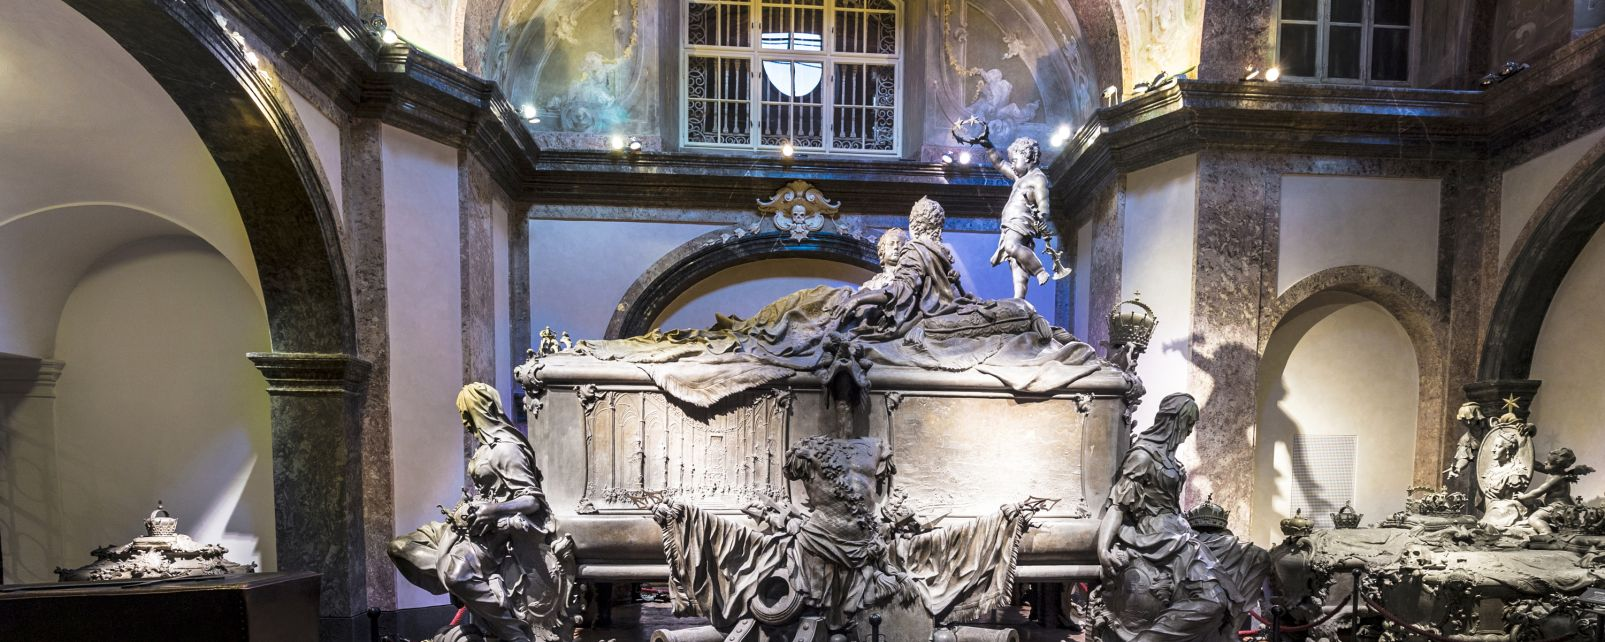 The Imperial Crypt (Capuchin Crypt), The Imperial Crypt (Capuchins' Crypt), Castles, Vienna, Austria